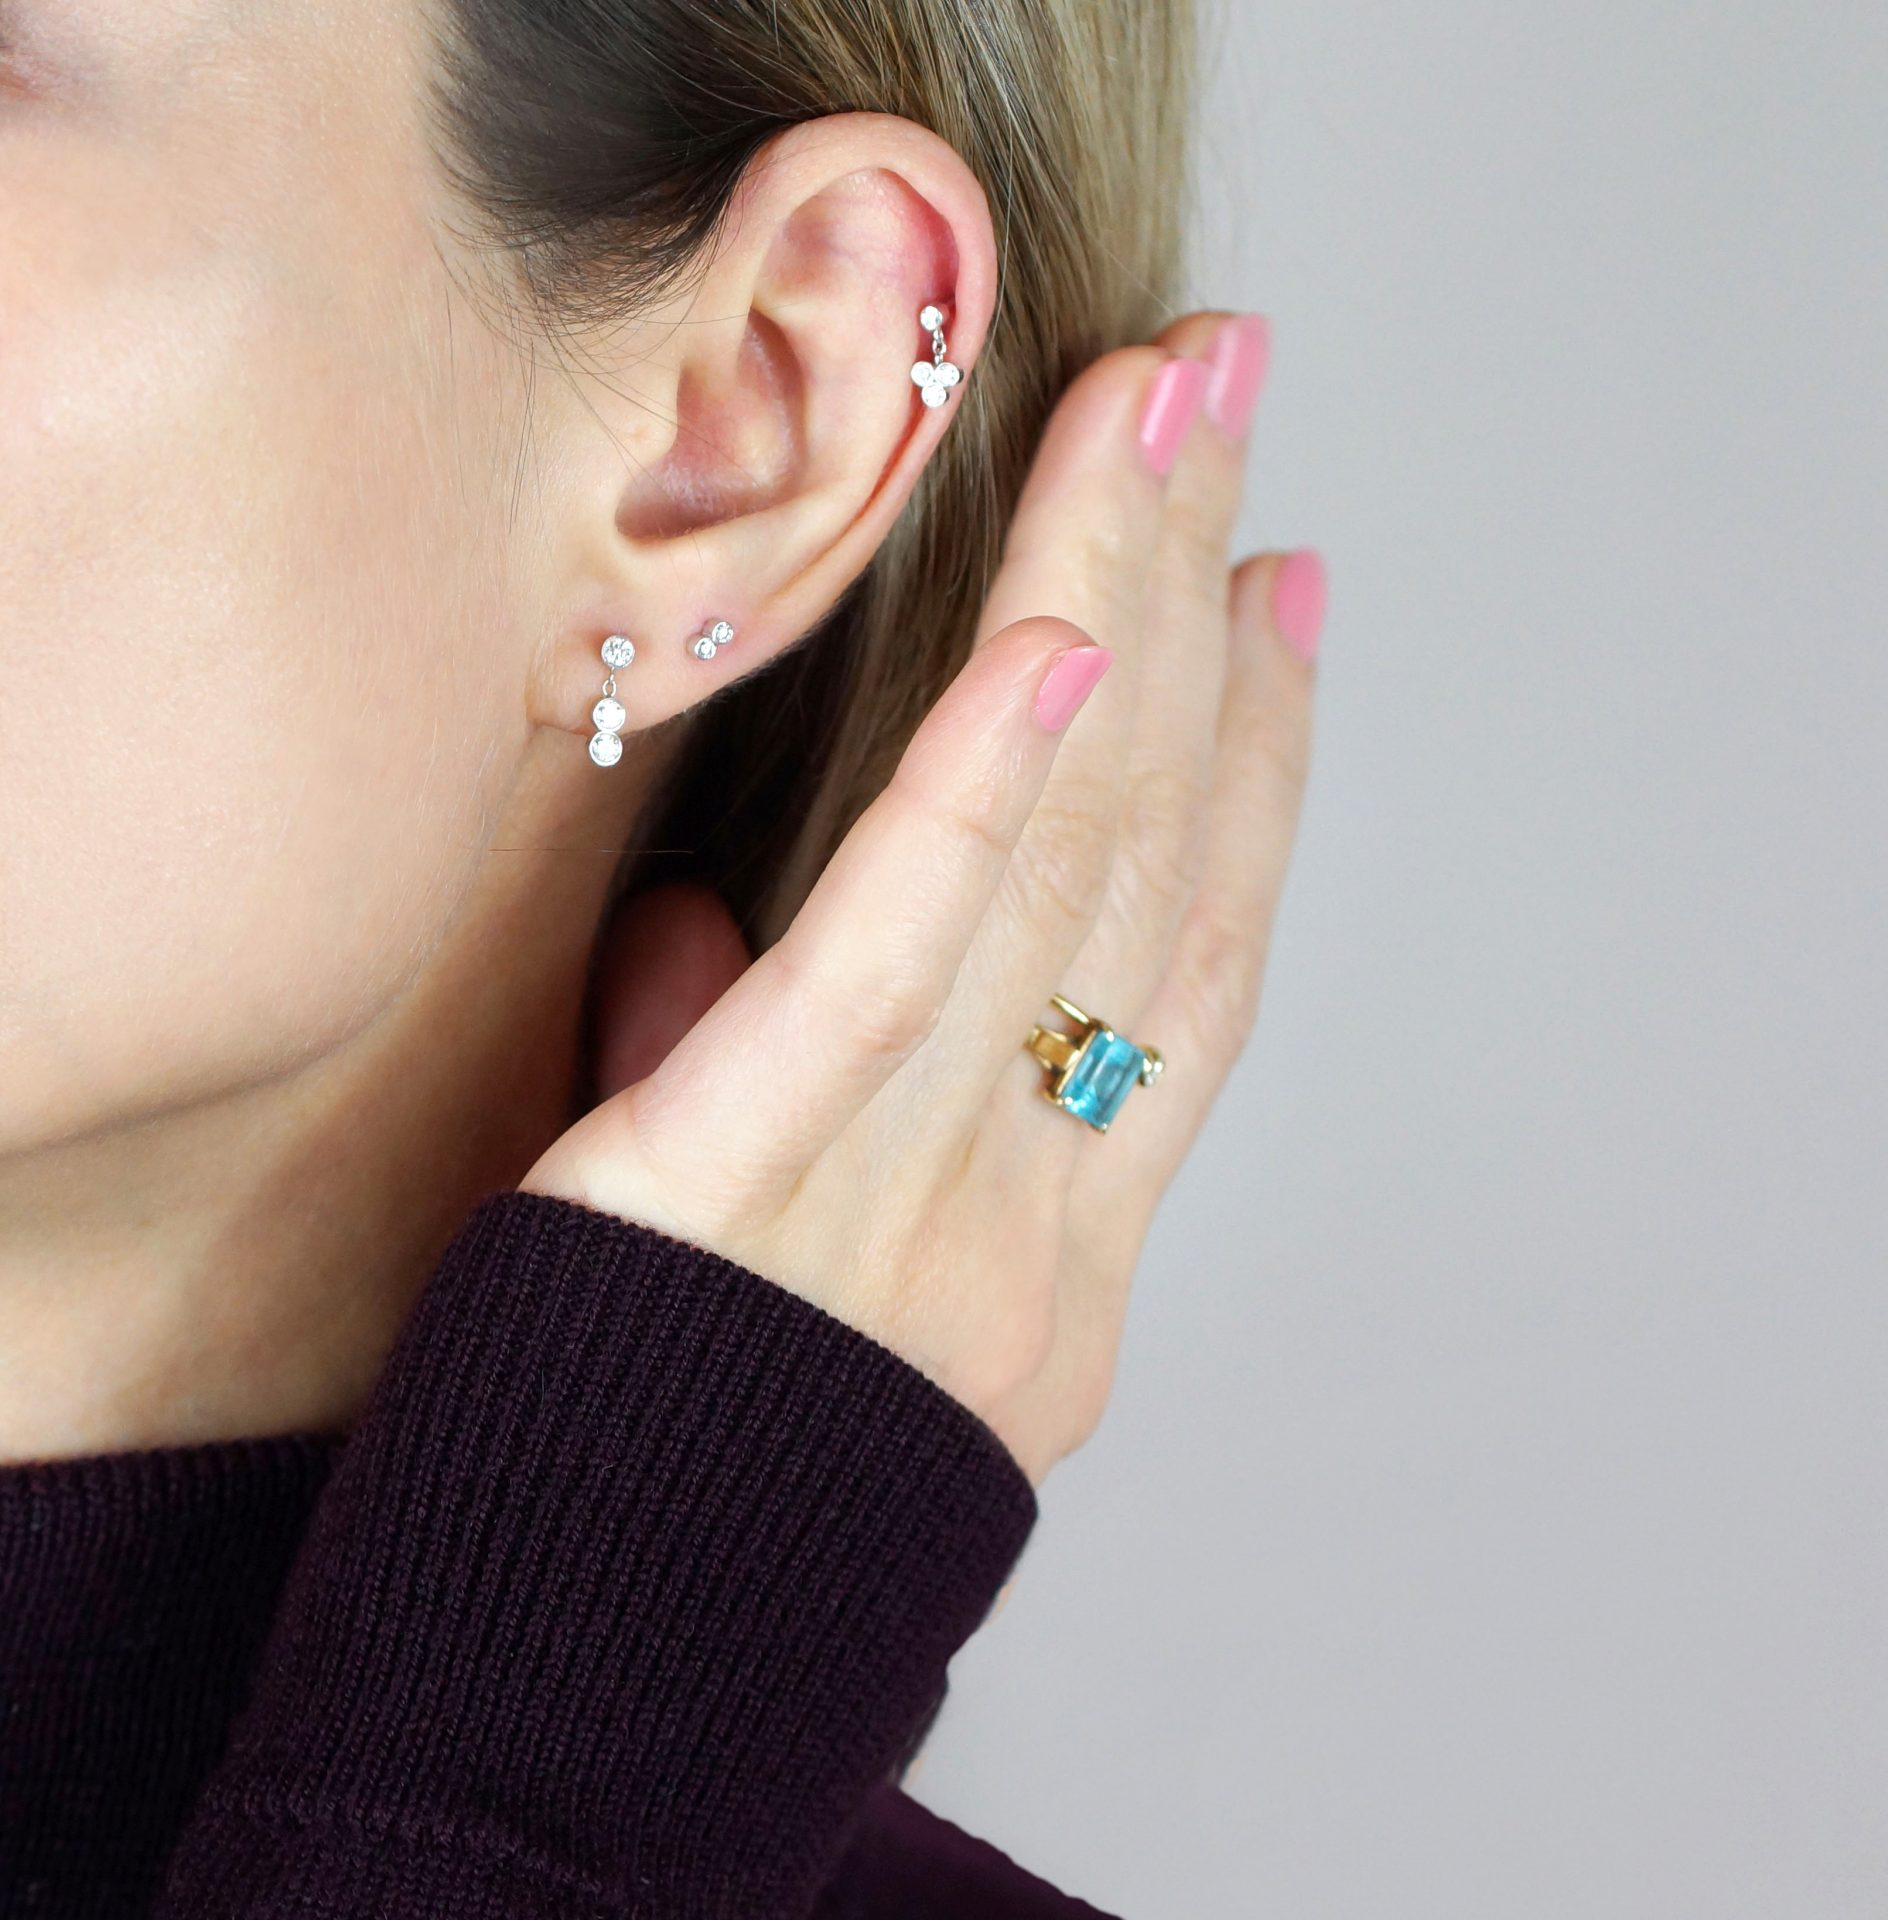 Trendy Types of Ear Piercings and Combinations stacking combos of large diamond studs in simple shapes mixed with hoop stacks or go for a combination of miniature studs along with threader earrings